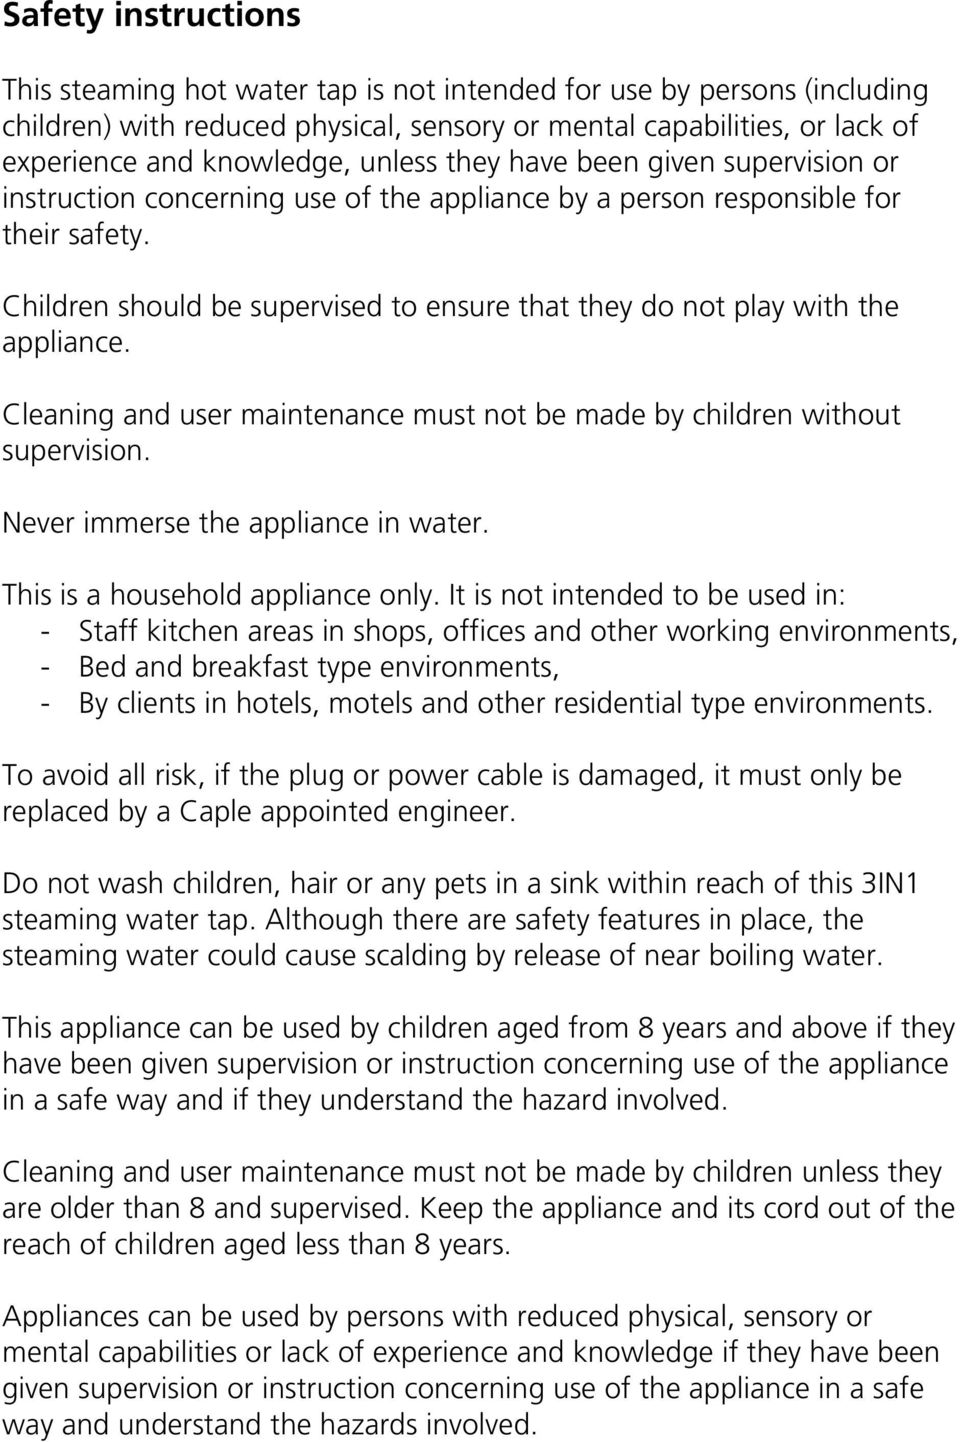 Children should be supervised to ensure that they do not play with the appliance. Cleaning and user maintenance must not be made by children without supervision. Never immerse the appliance in water.